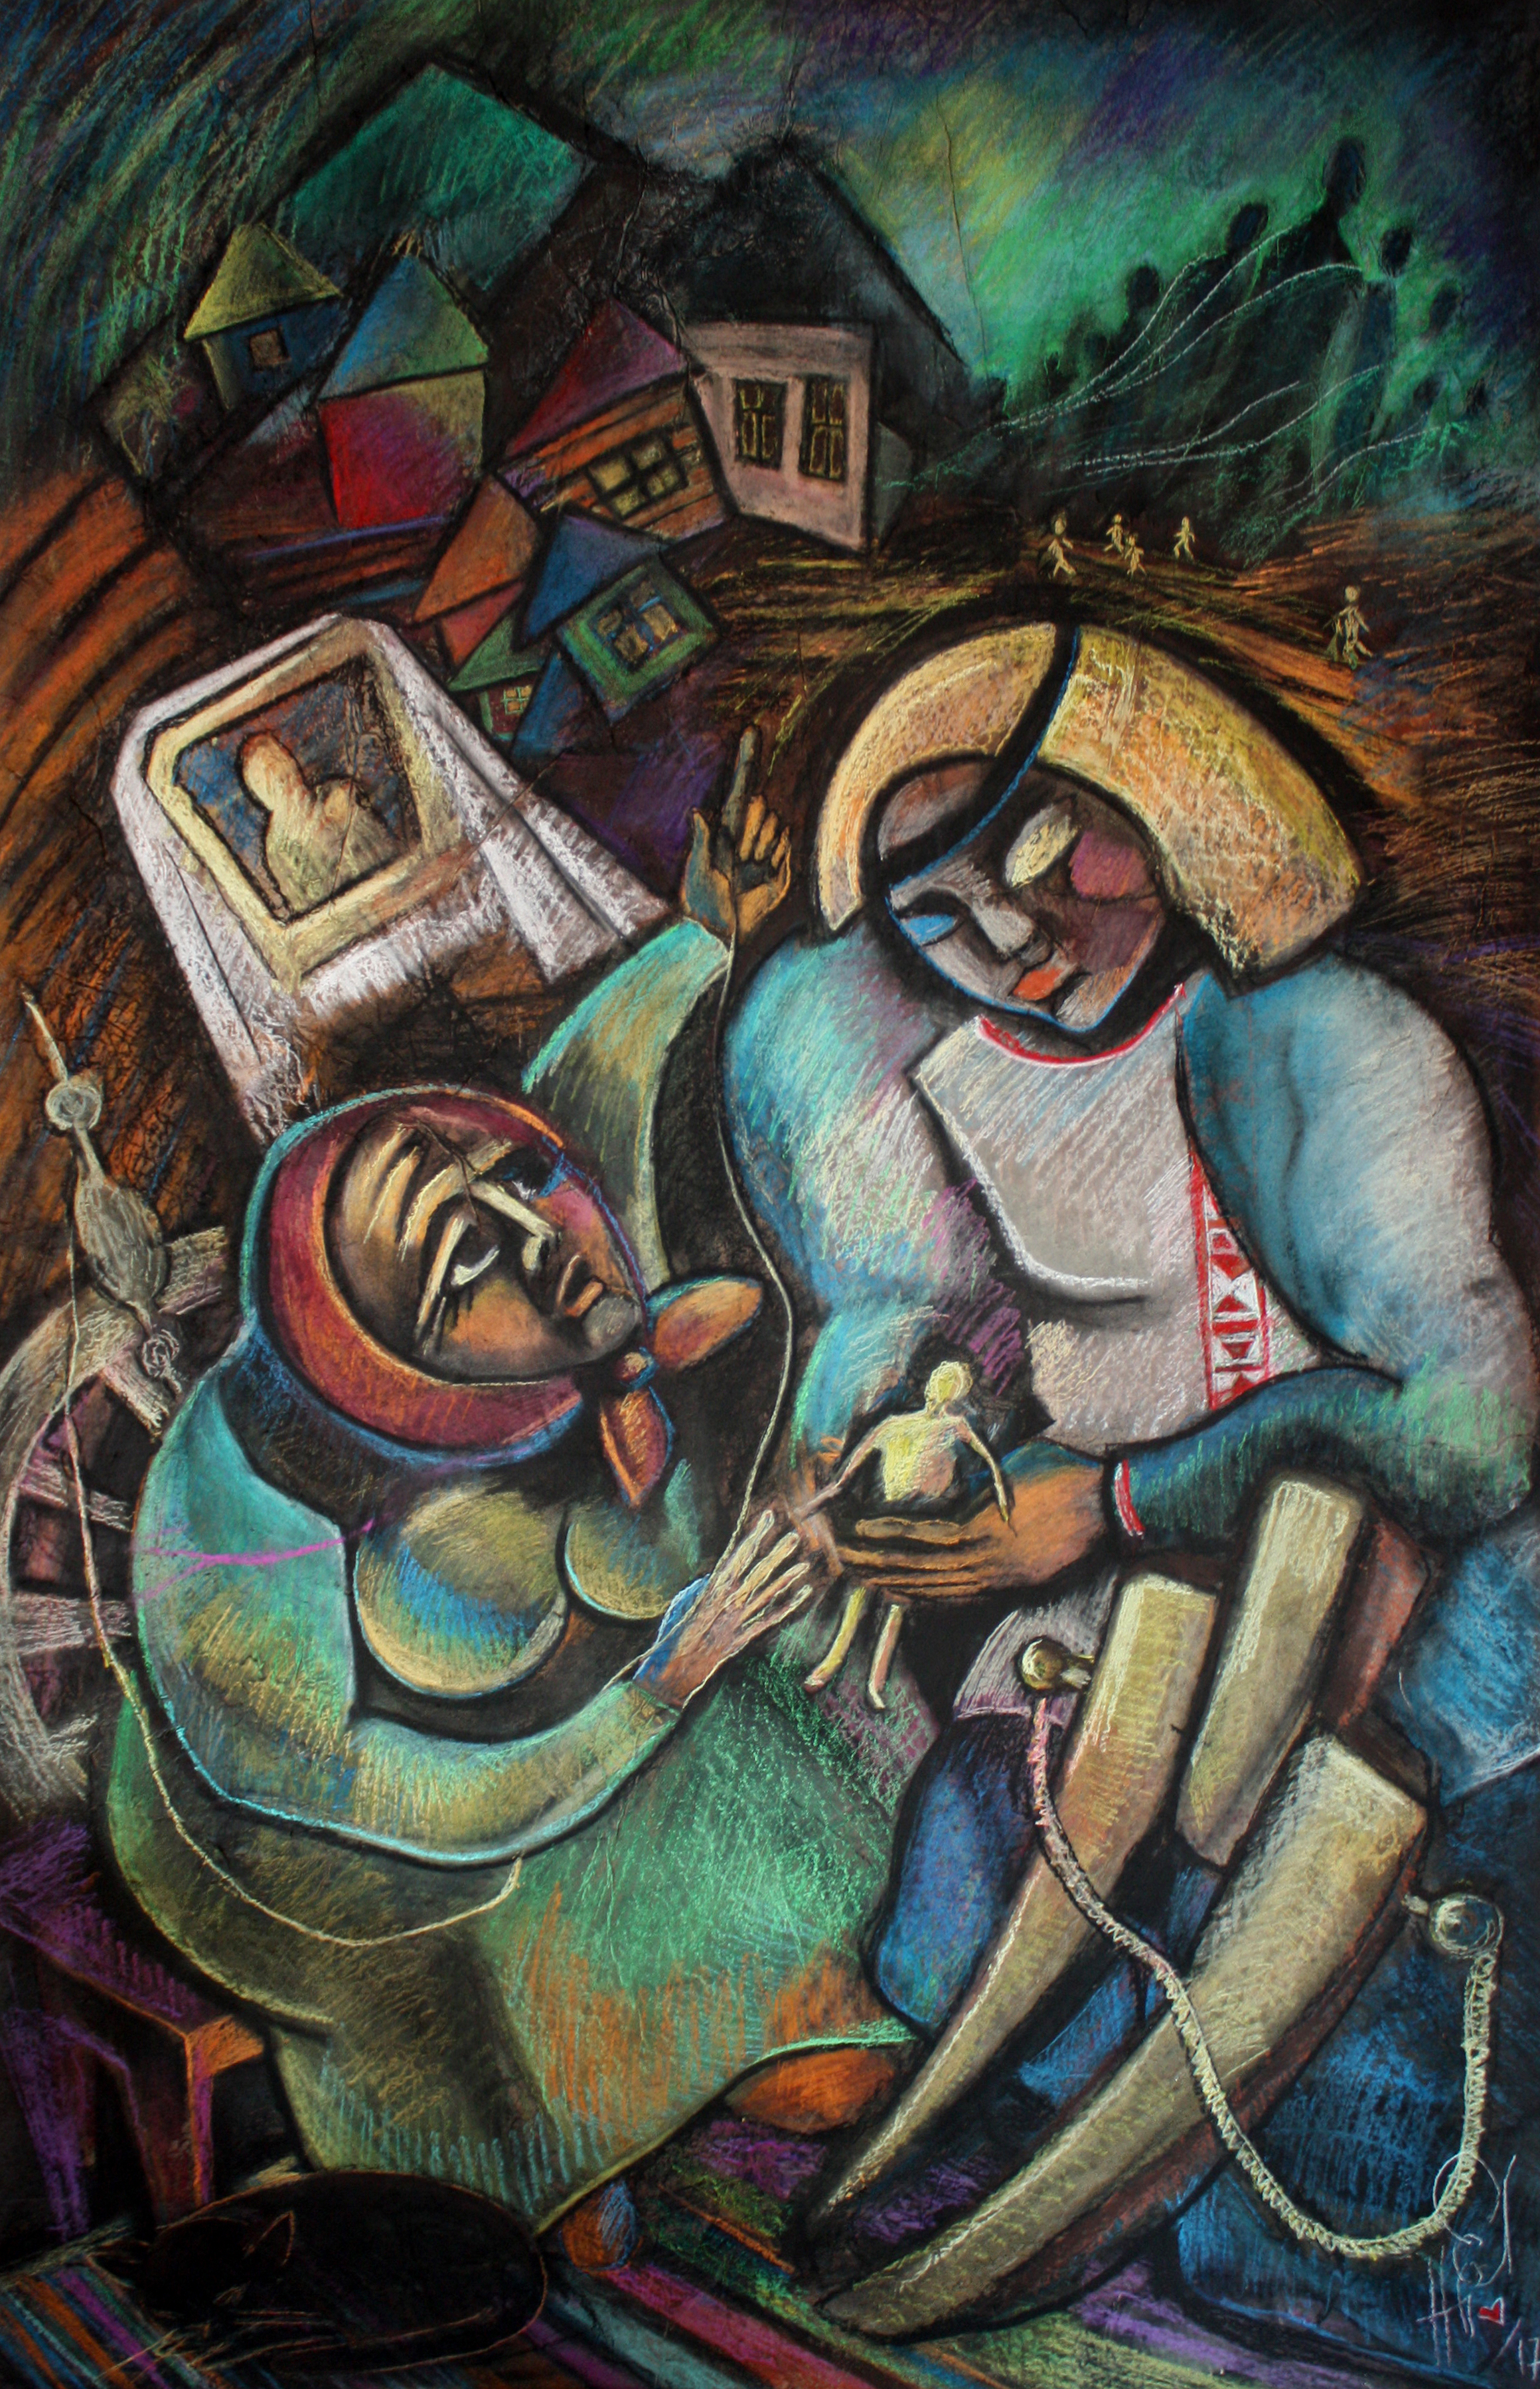 """The series """"Cossack Kraina Belarus"""" From the diptych """"Vilikans of Vitsebshchina"""" """"The story of the growth of former and future people"""" Recorded by N.Y. Nikiforovsky"""